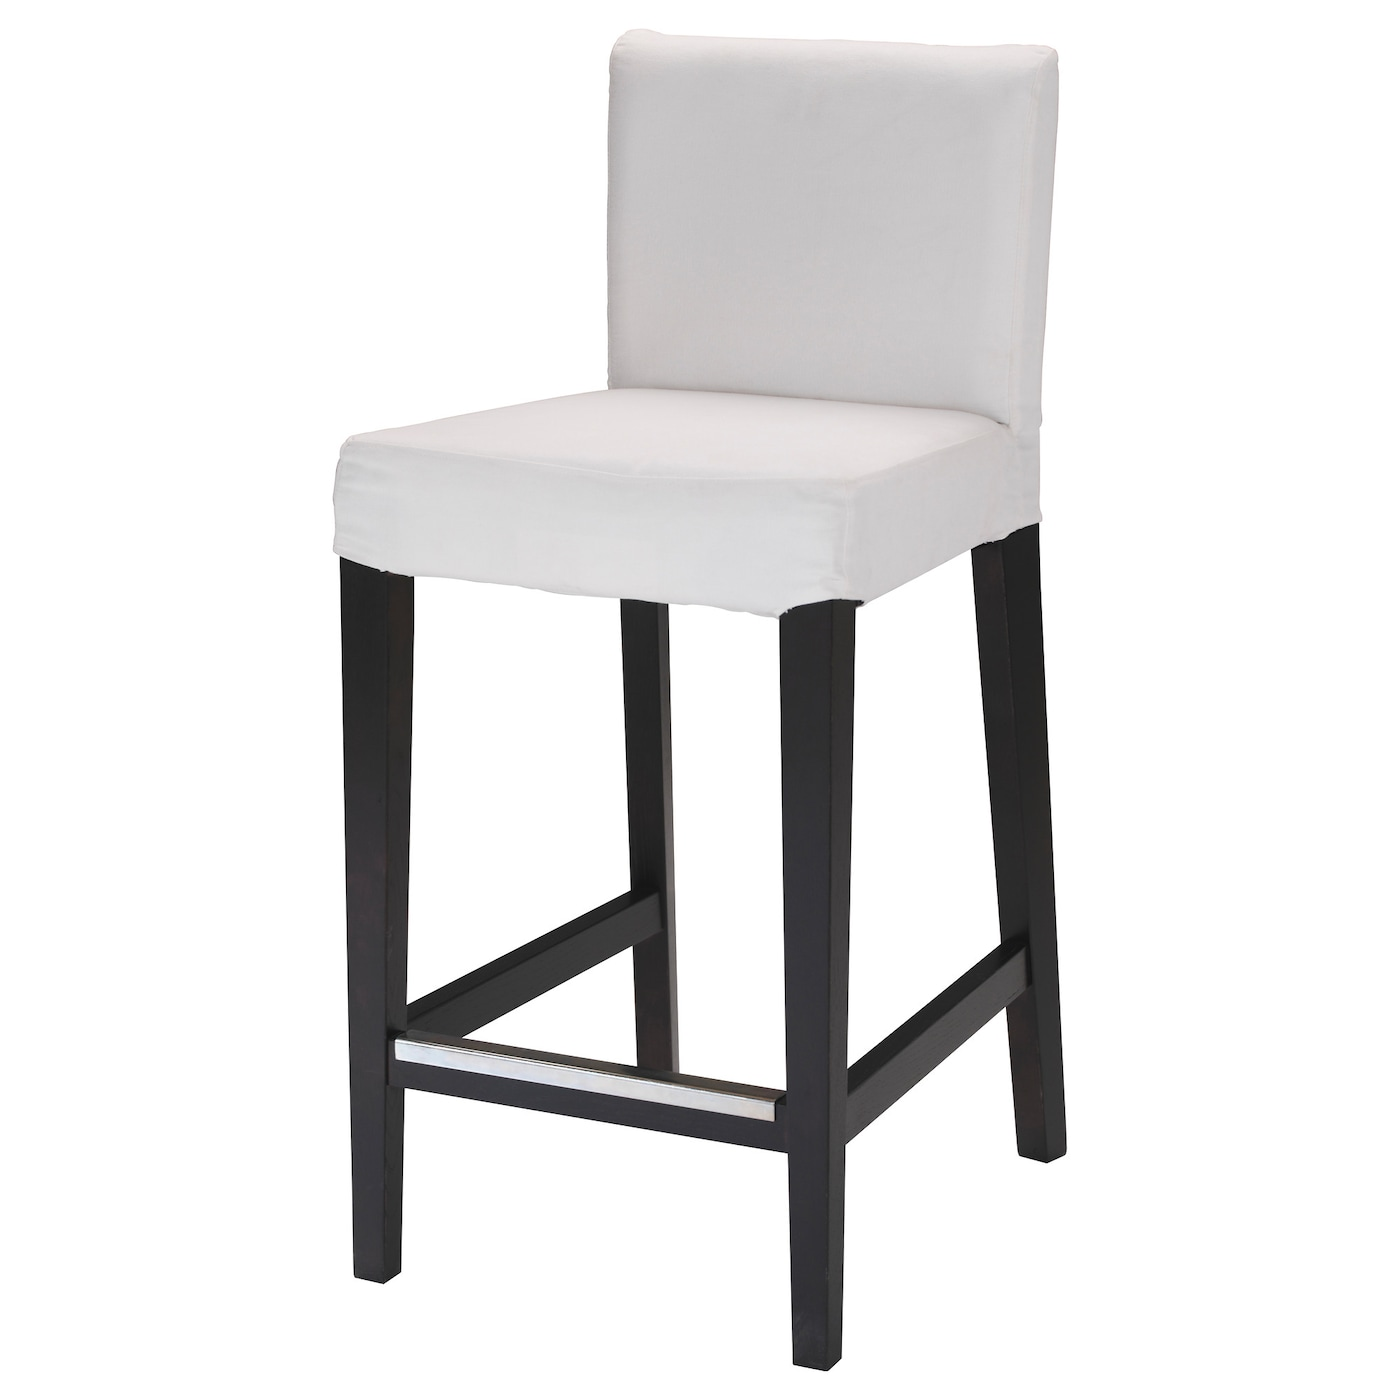 IKEA HENRIKSDAL bar stool with backrest frame The padded seat means you sit comfortably.  sc 1 st  Ikea & Bar Stools u0026 Bar Chairs - IKEA islam-shia.org